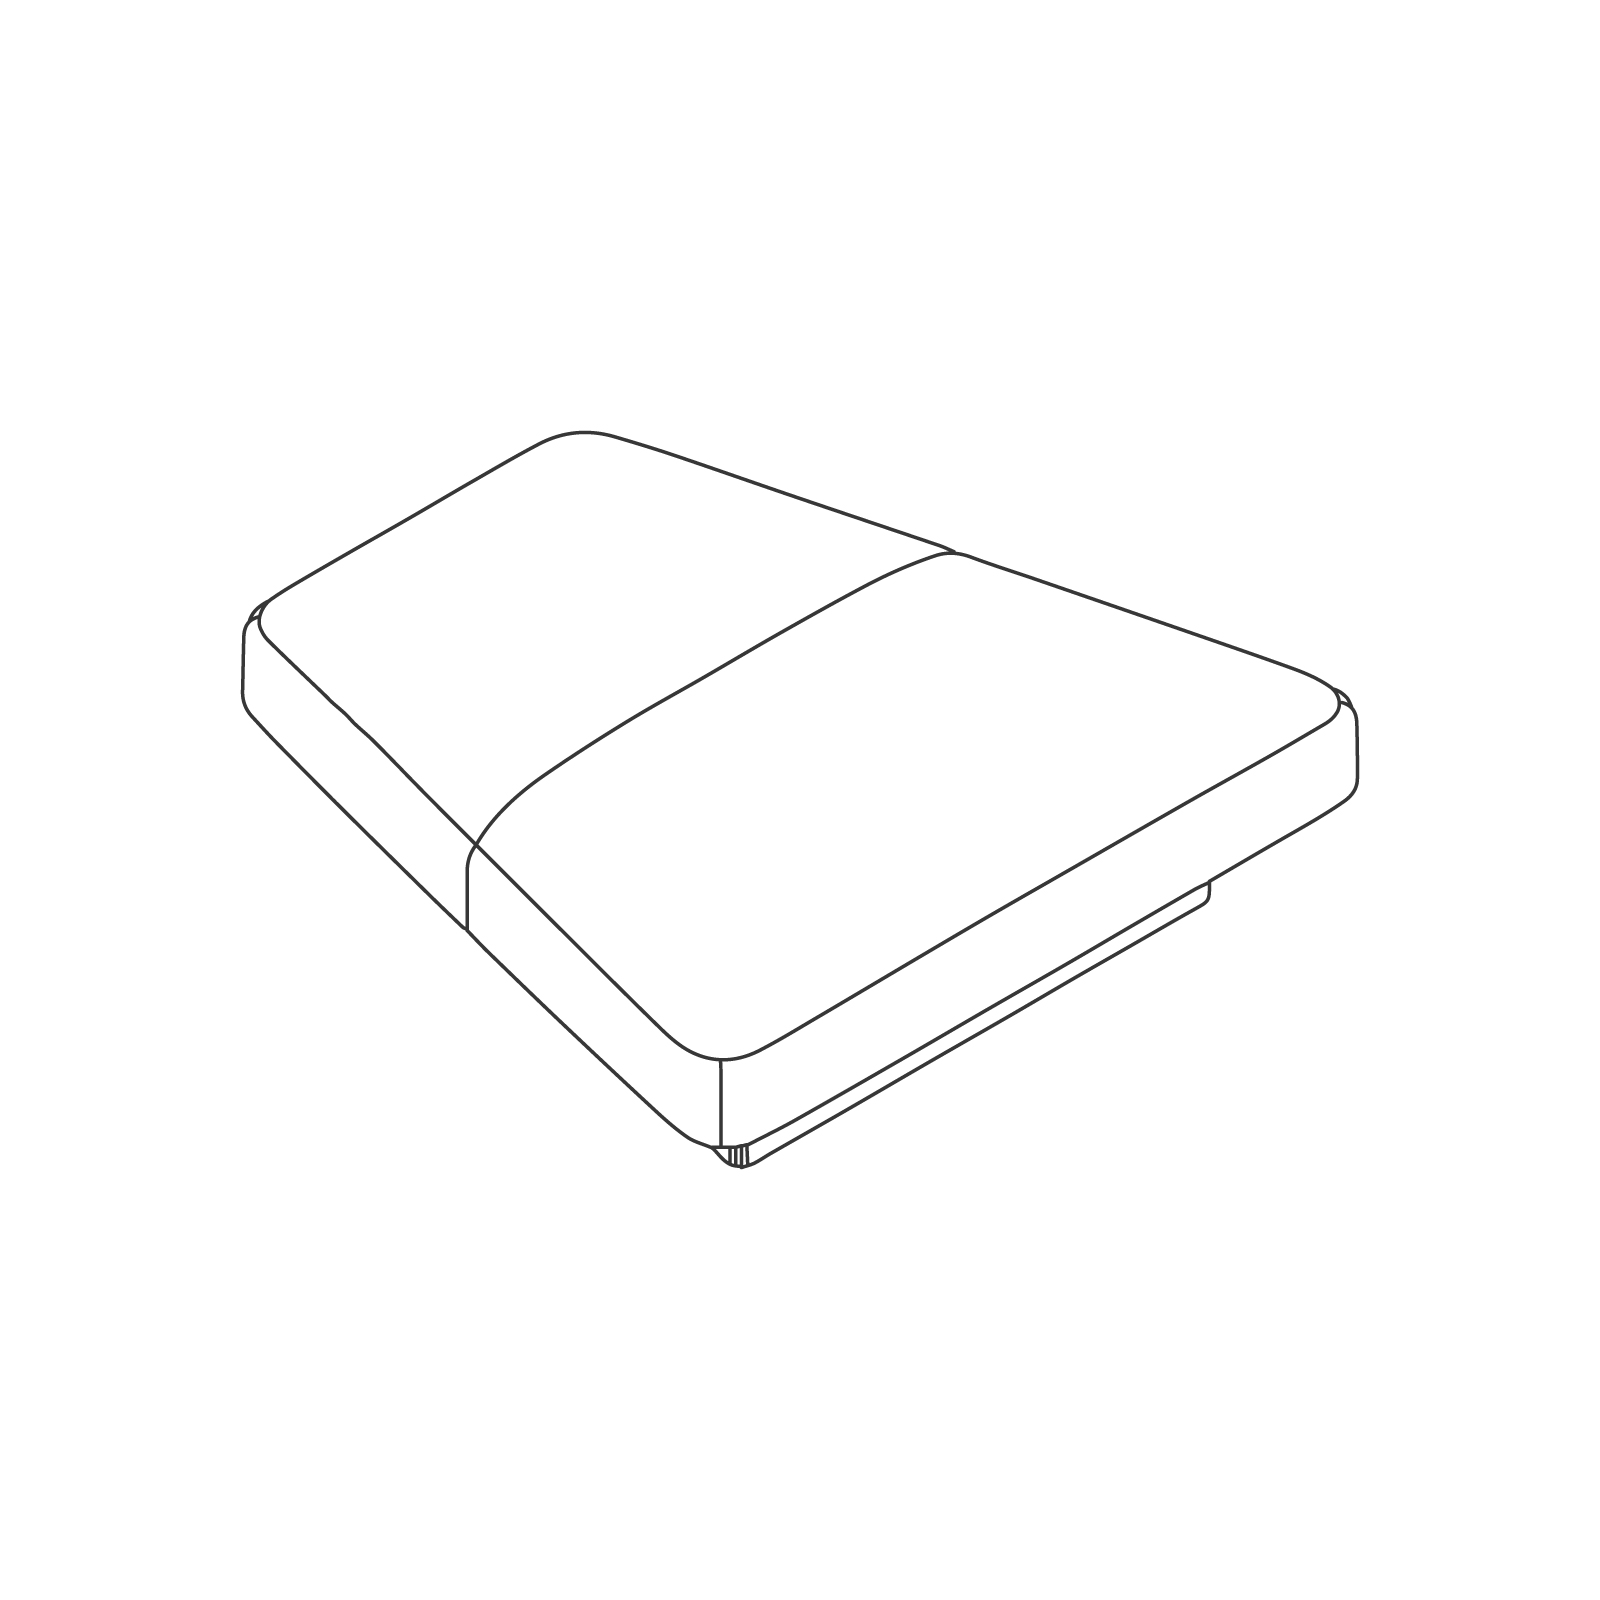 A line drawing of Rhyme Modular Seating–Bench.